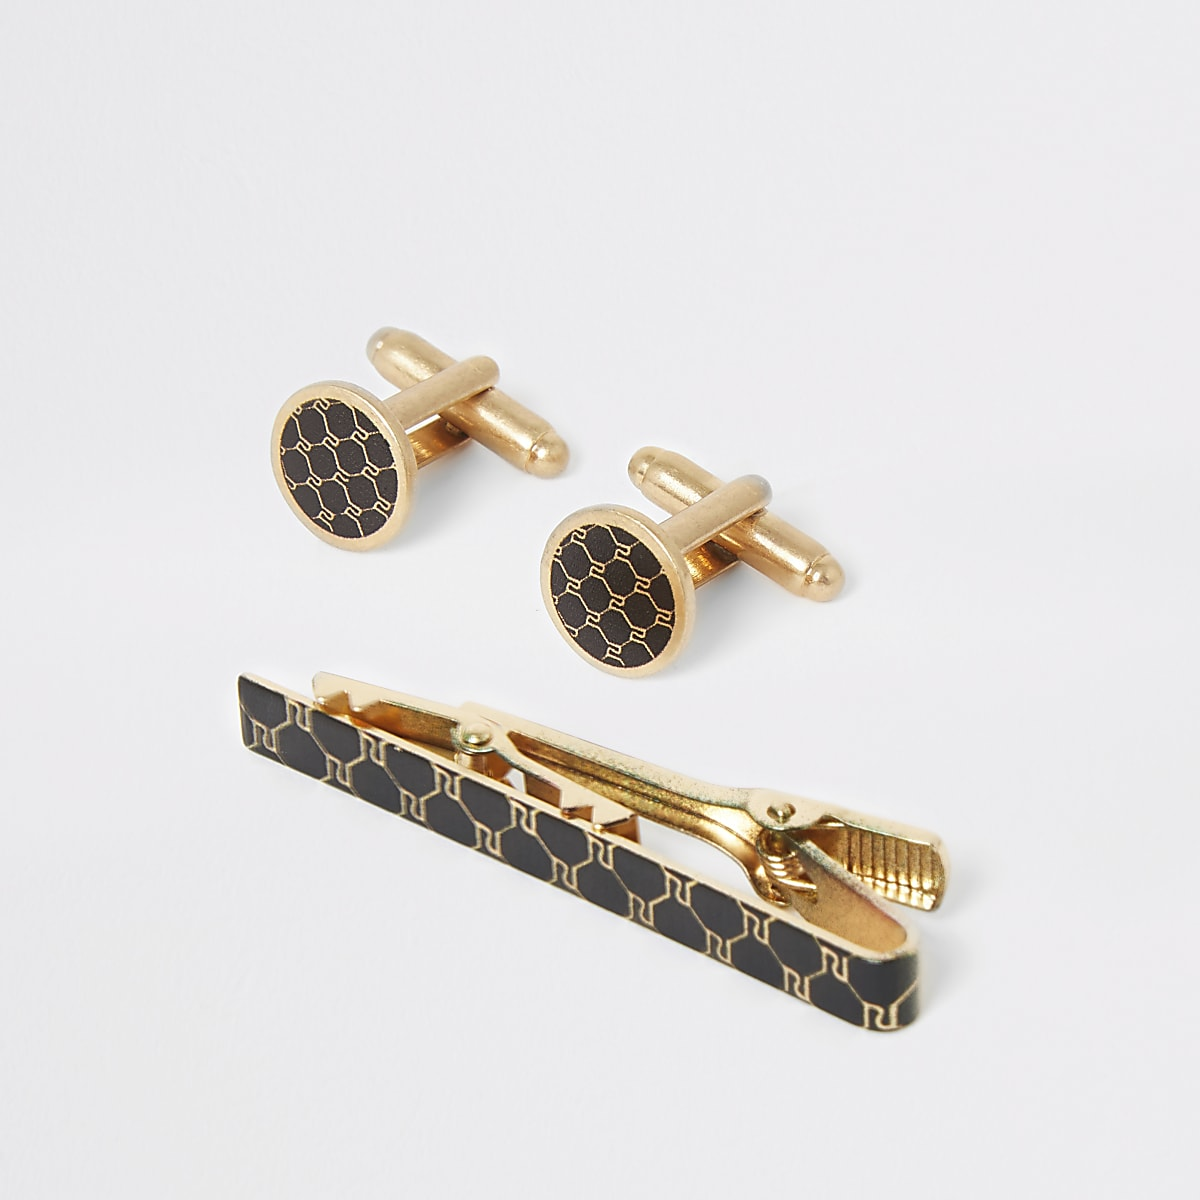 Gold tone RI print cufflinks and tie bar set